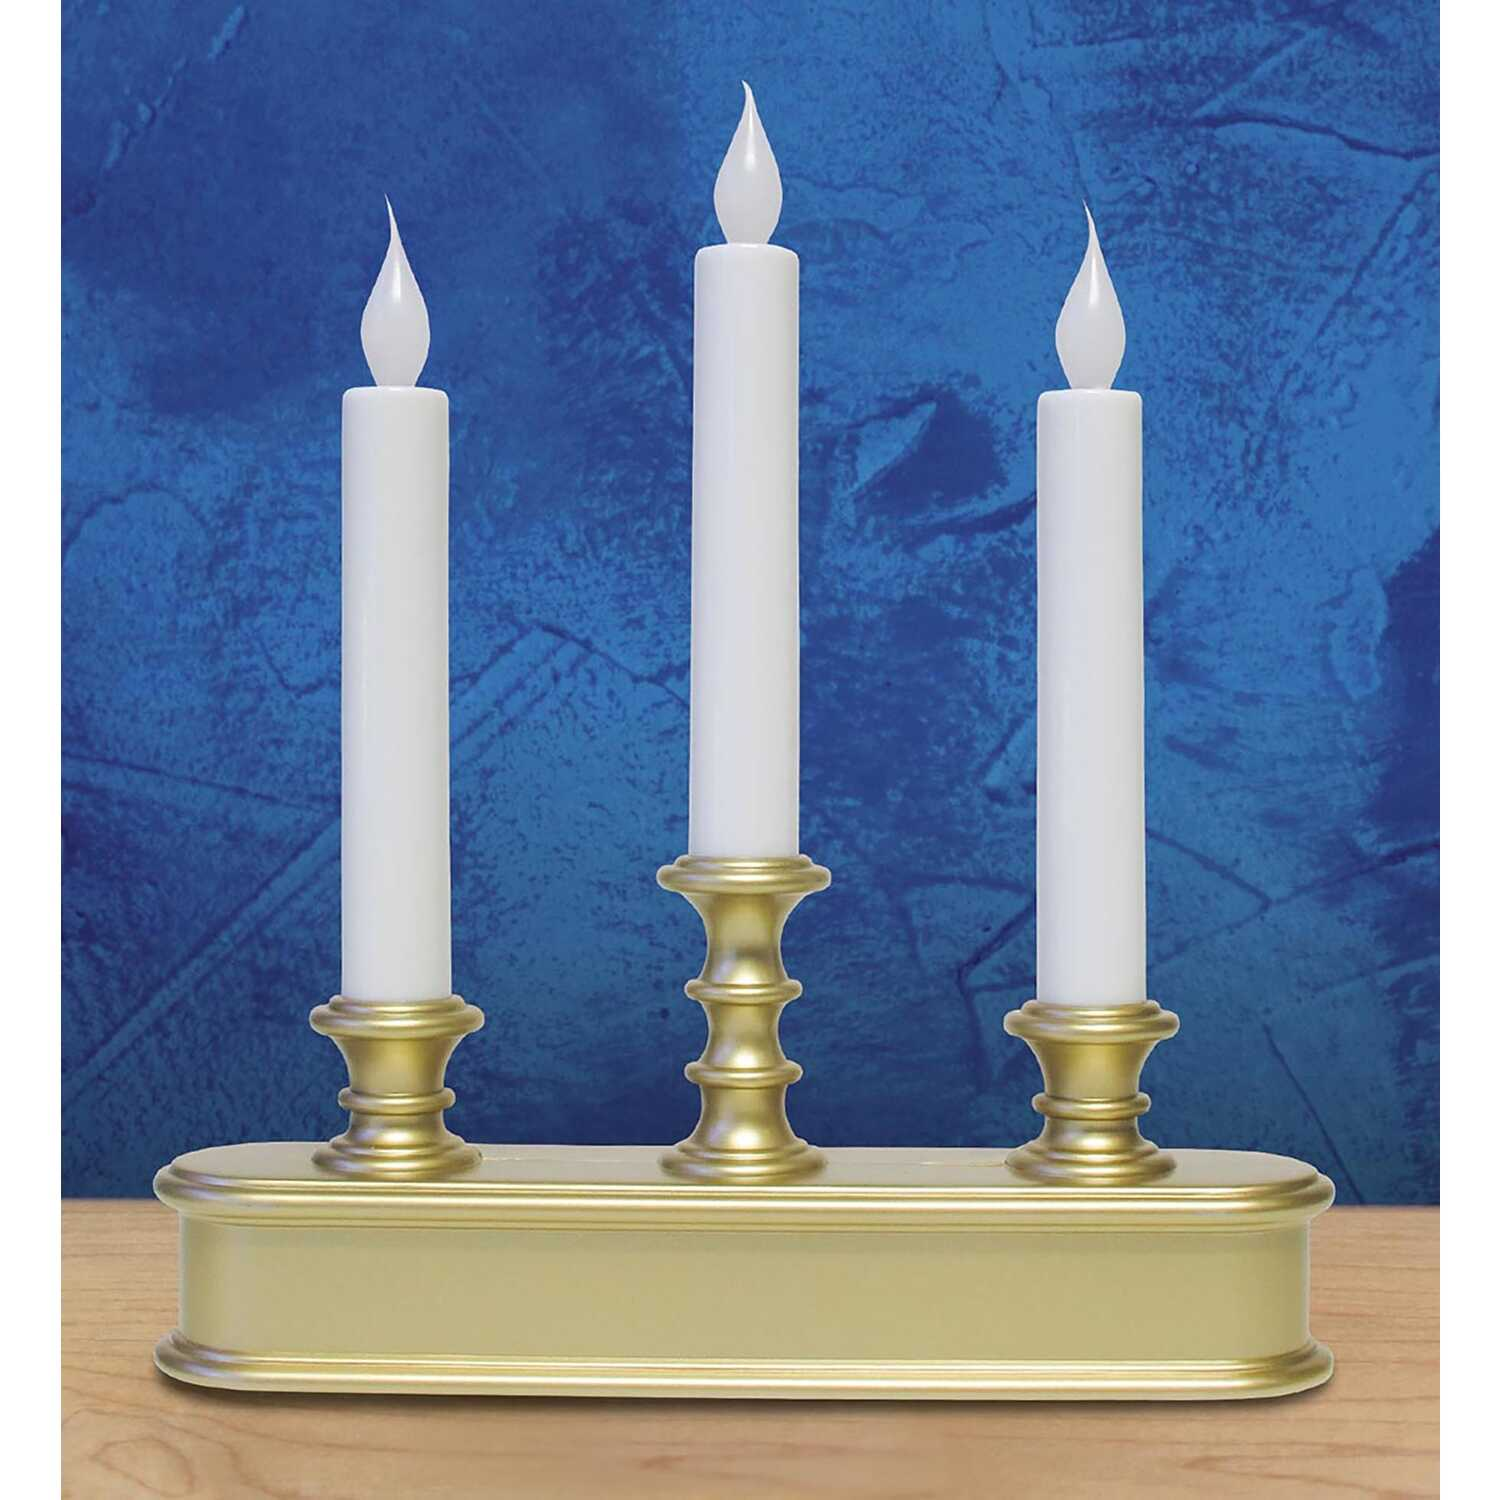 Celebrations  Brushed Gold  No Scent Auto Sensor  Candle  10 in. H